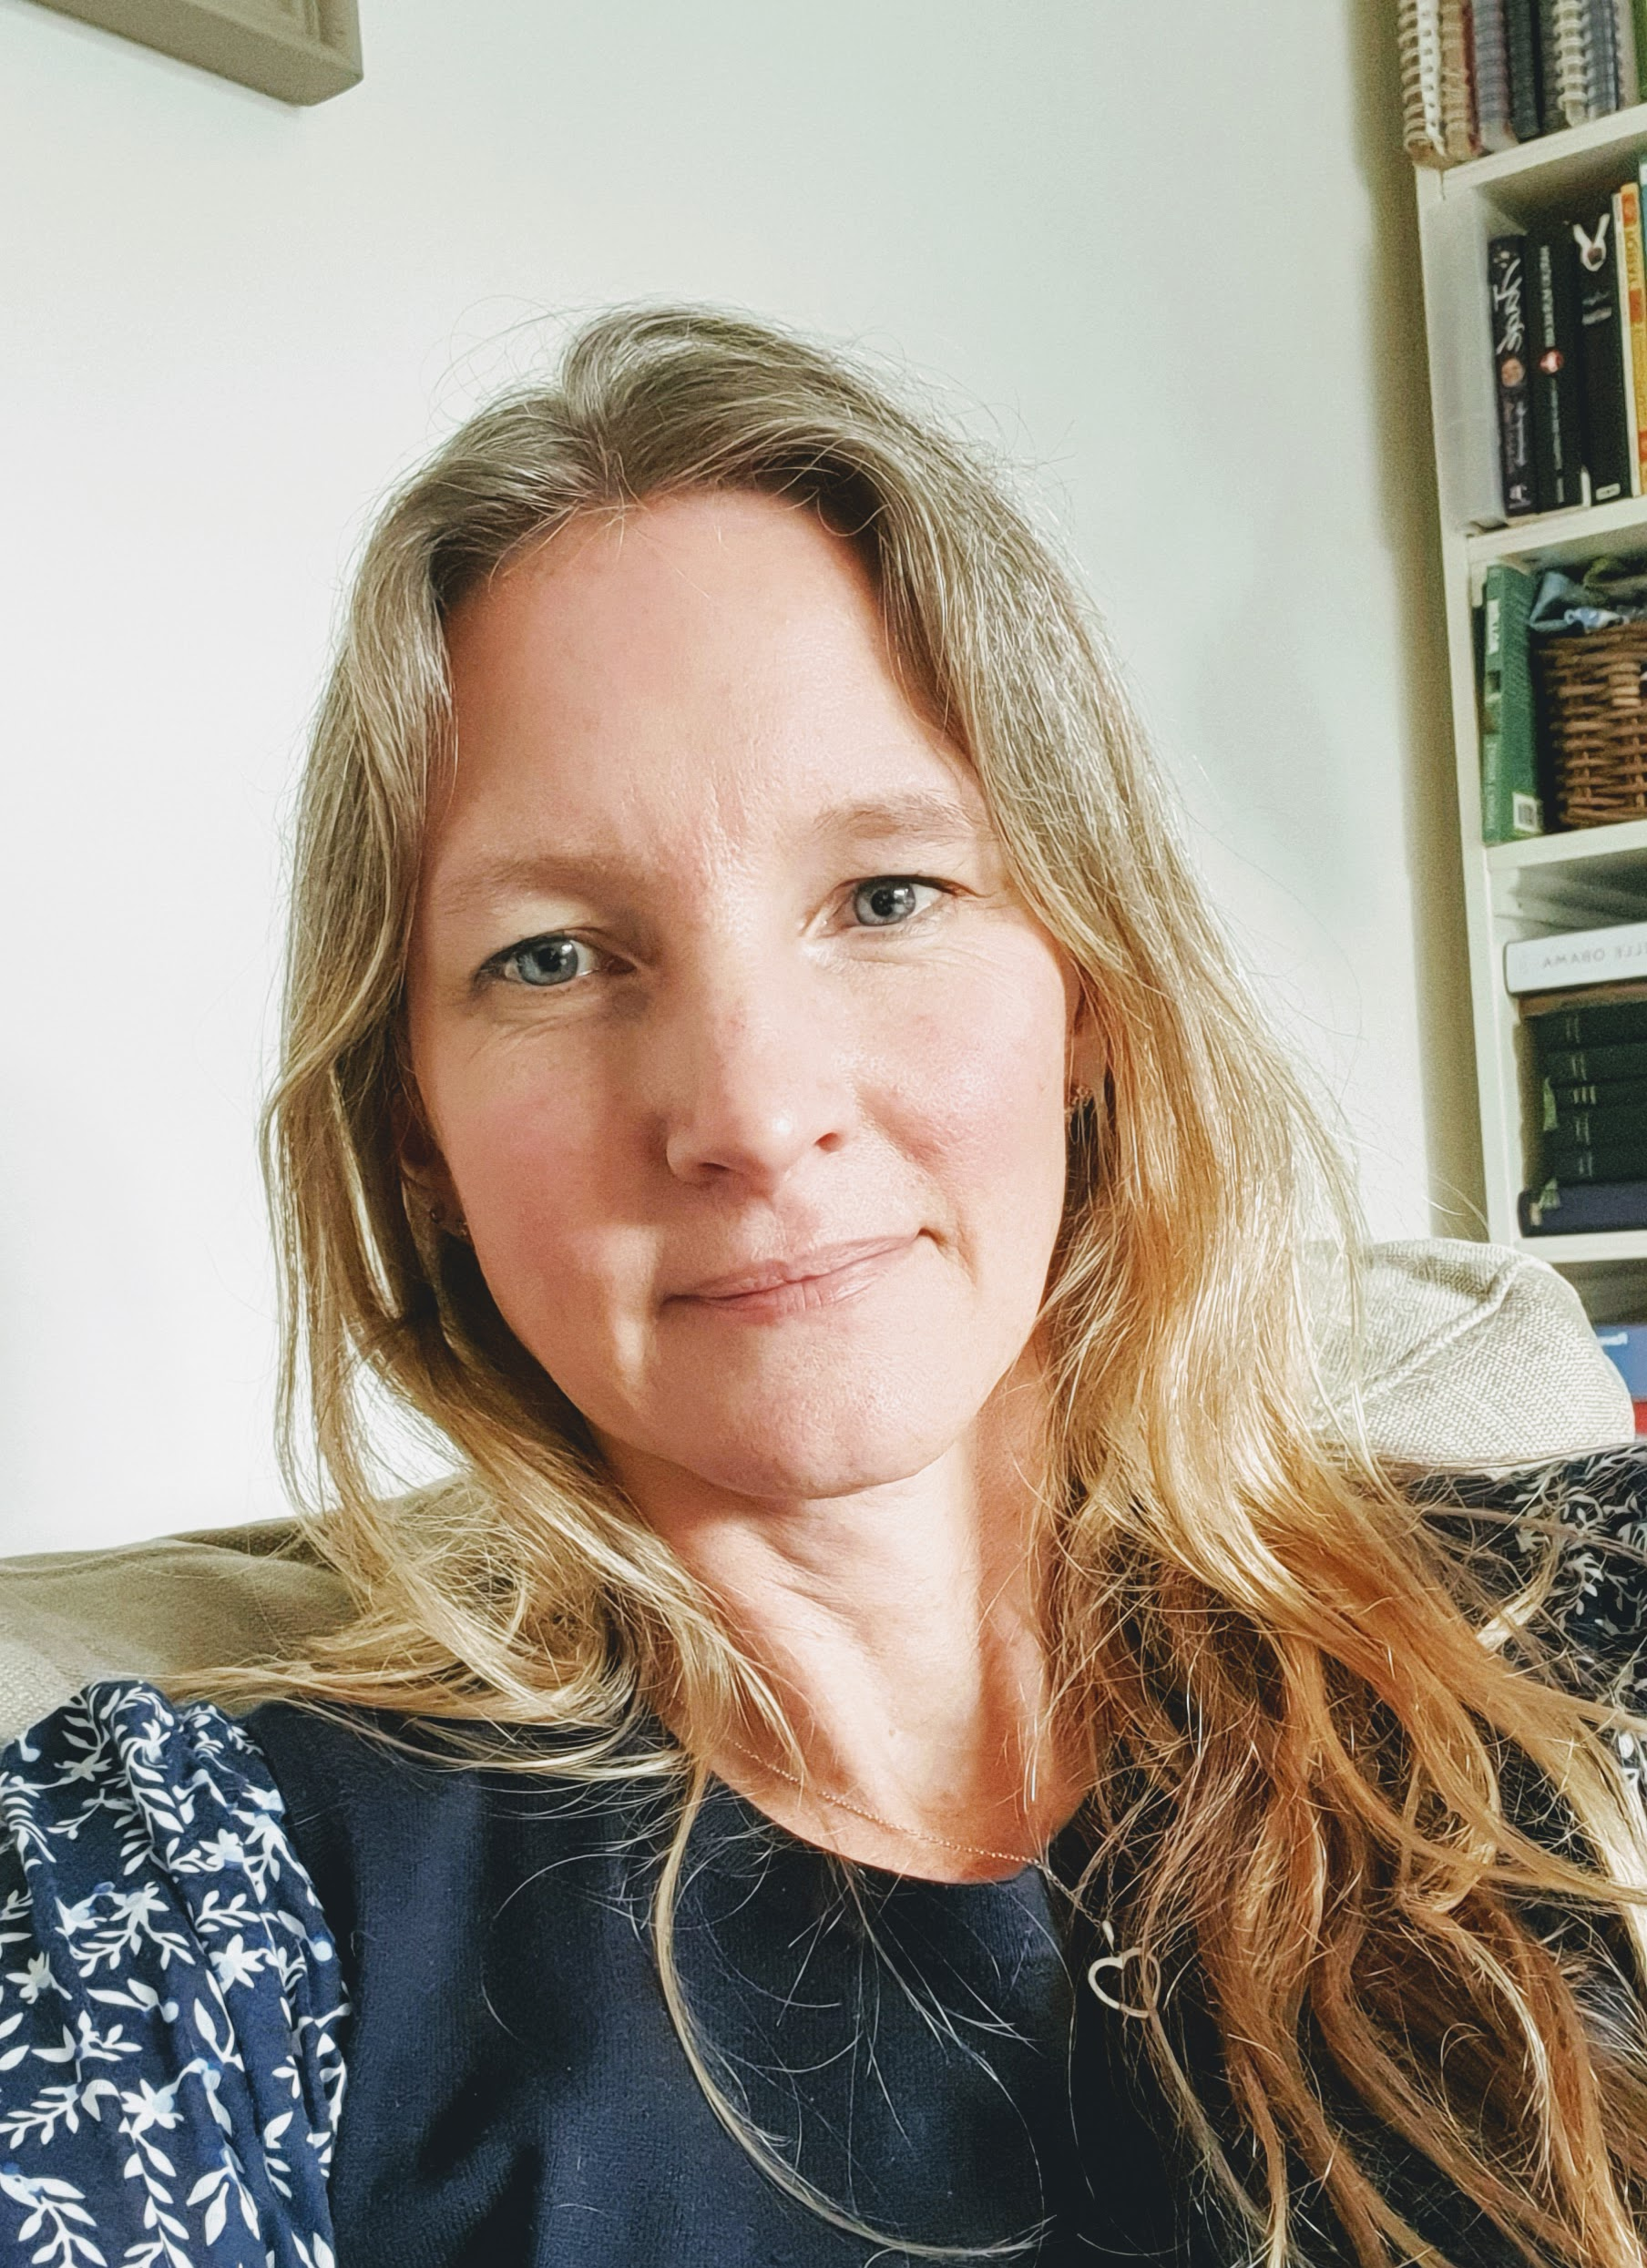 Joanna Moult, agent and co-founder of Skylark Literary